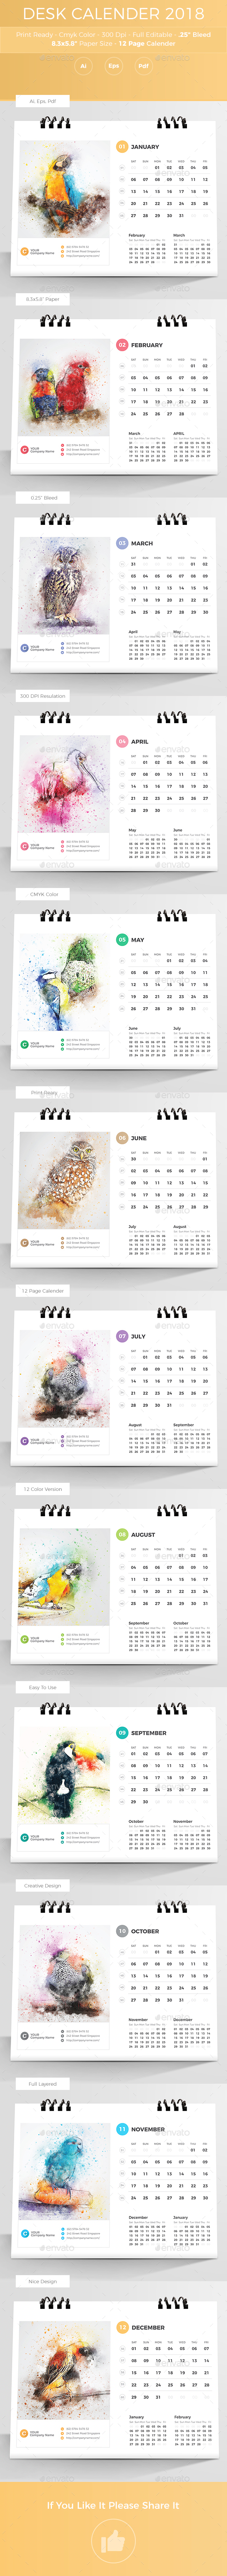 GraphicRiver Desk Calender 2018 20955725